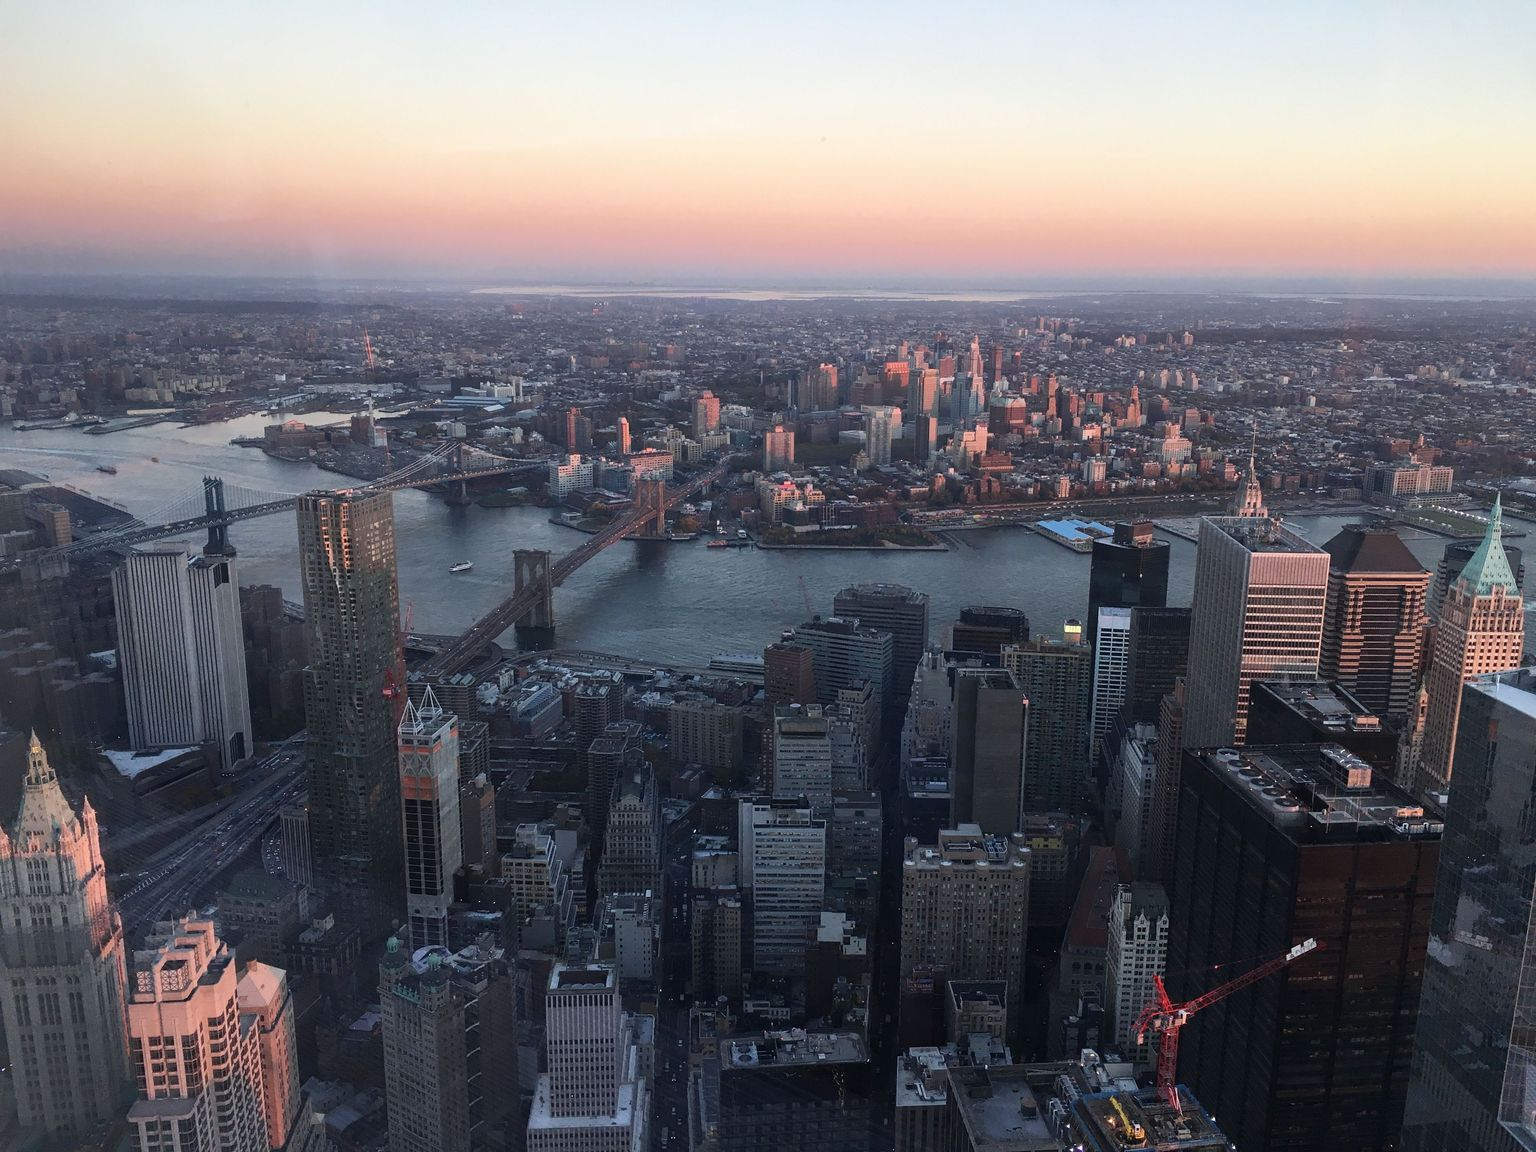 Sunset at the One World Observatory